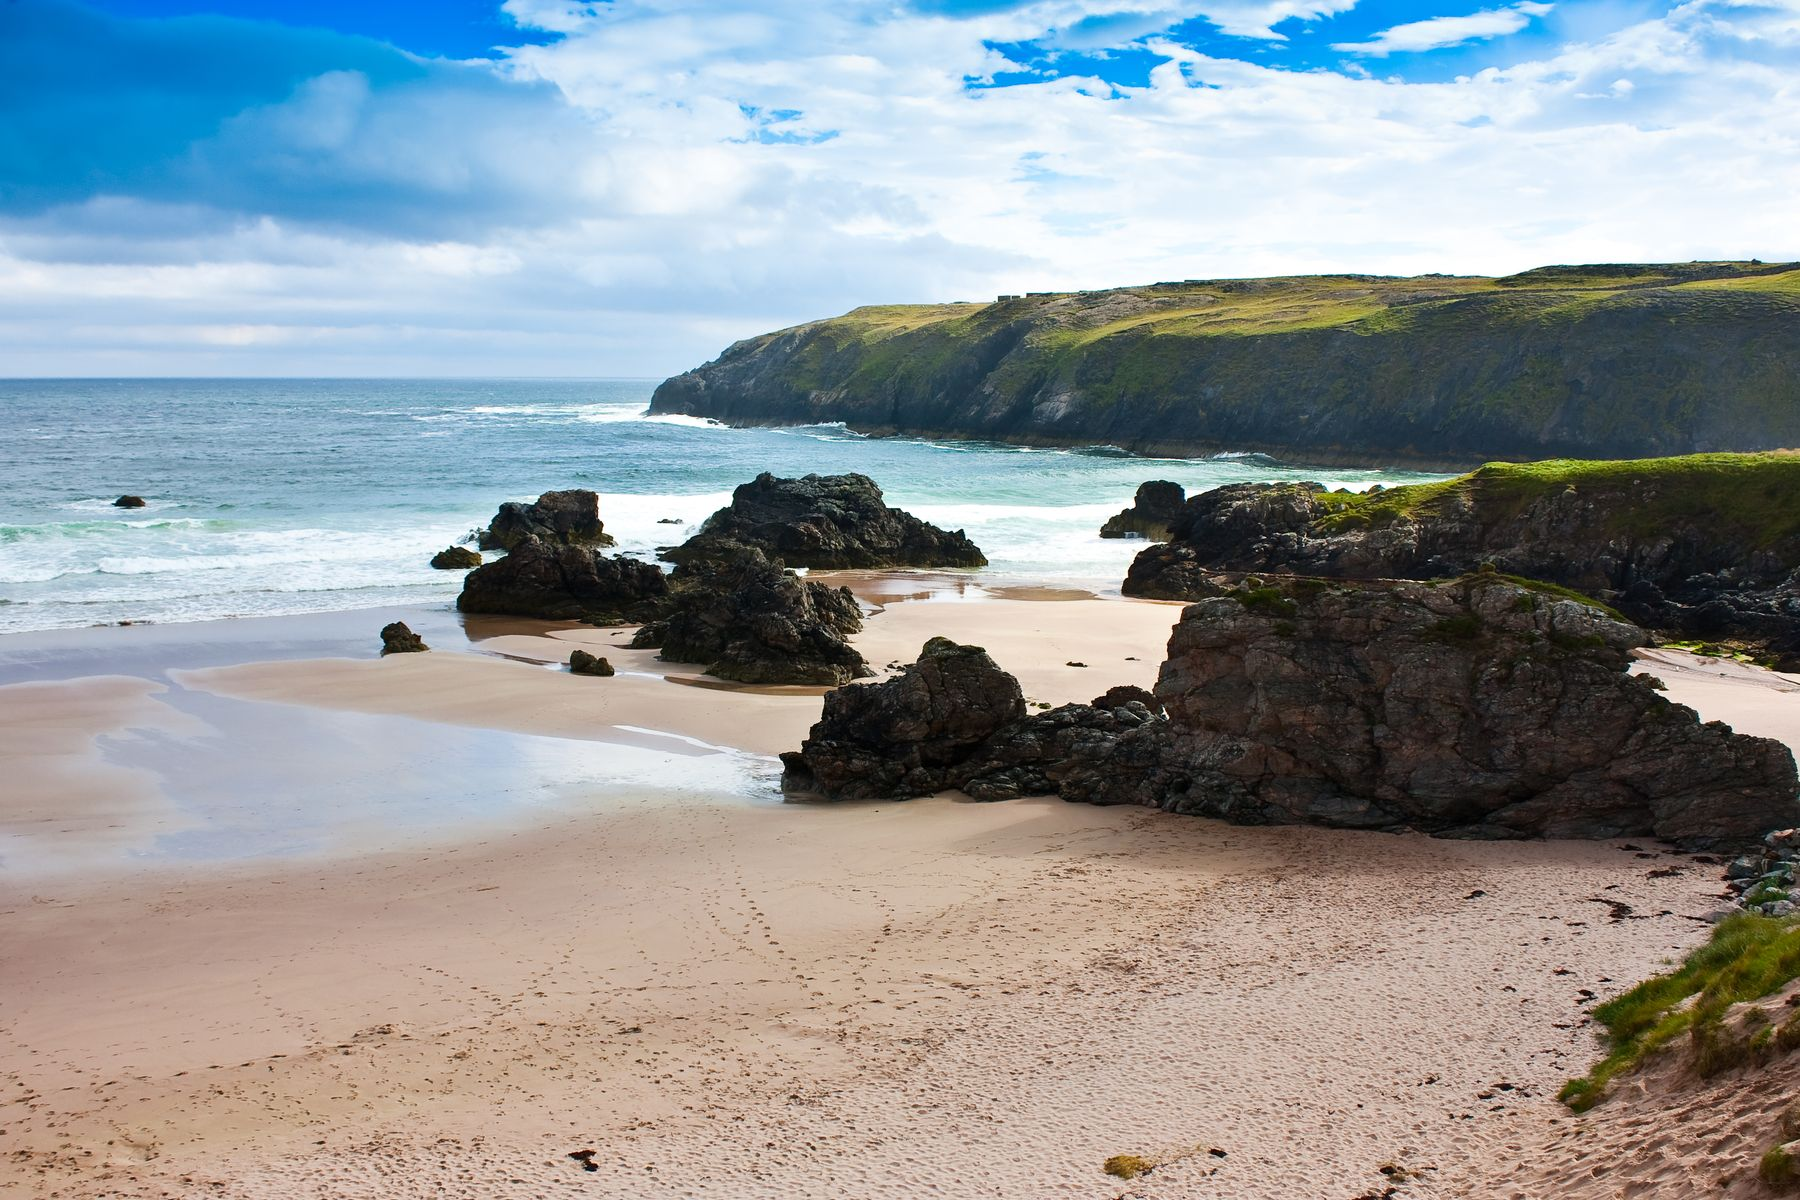 Durness Beach, a popular stopping point on the North Coast 500